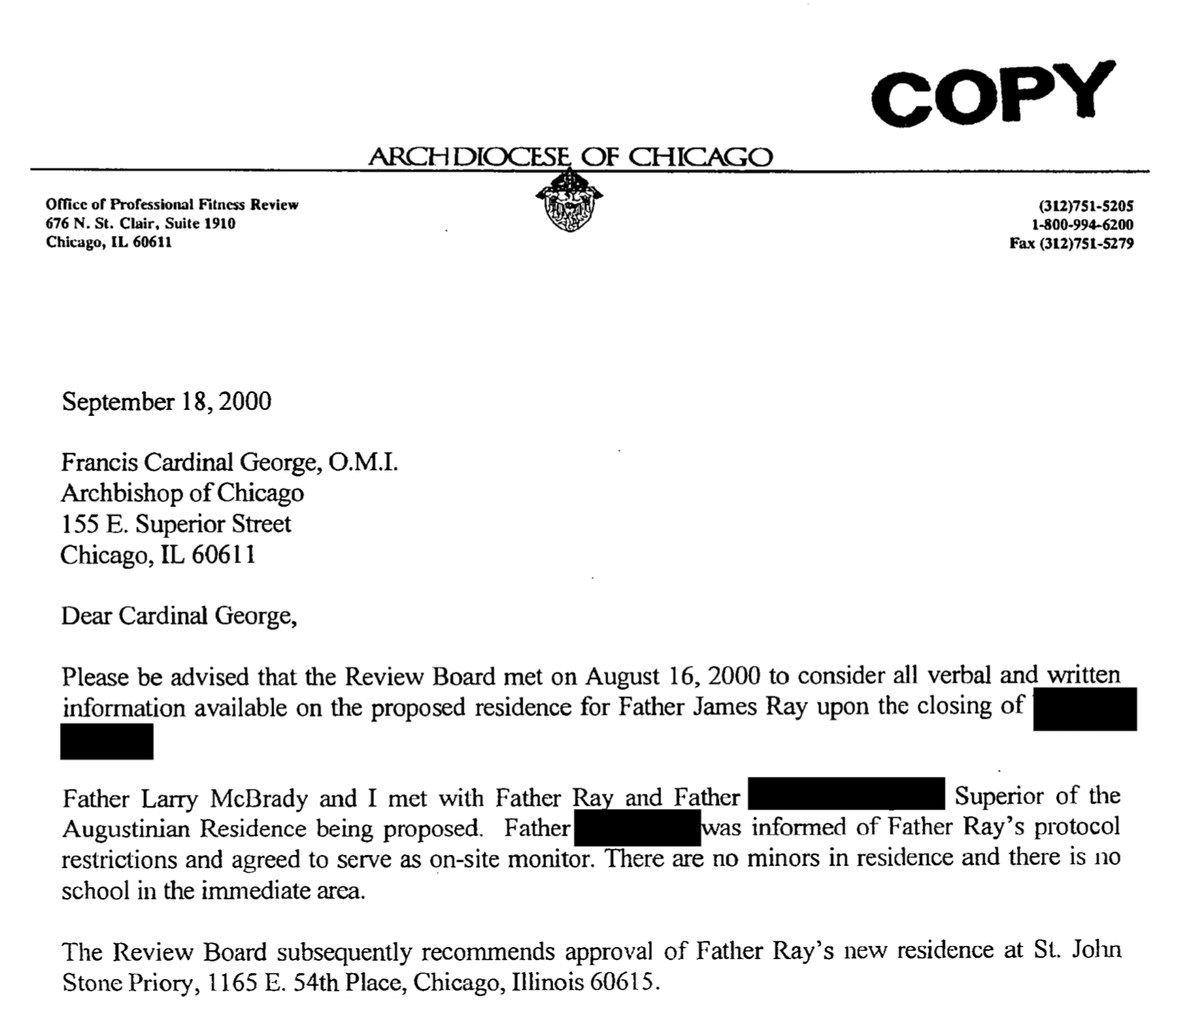 A letter to the then-head of the Archdiocese of Chicago, Cardinal Francis George, from one of his advisers saying it's fine for James Ray to move into a monastery because there's no school nearby — though an archdiocese-run elementary school is around the corner.